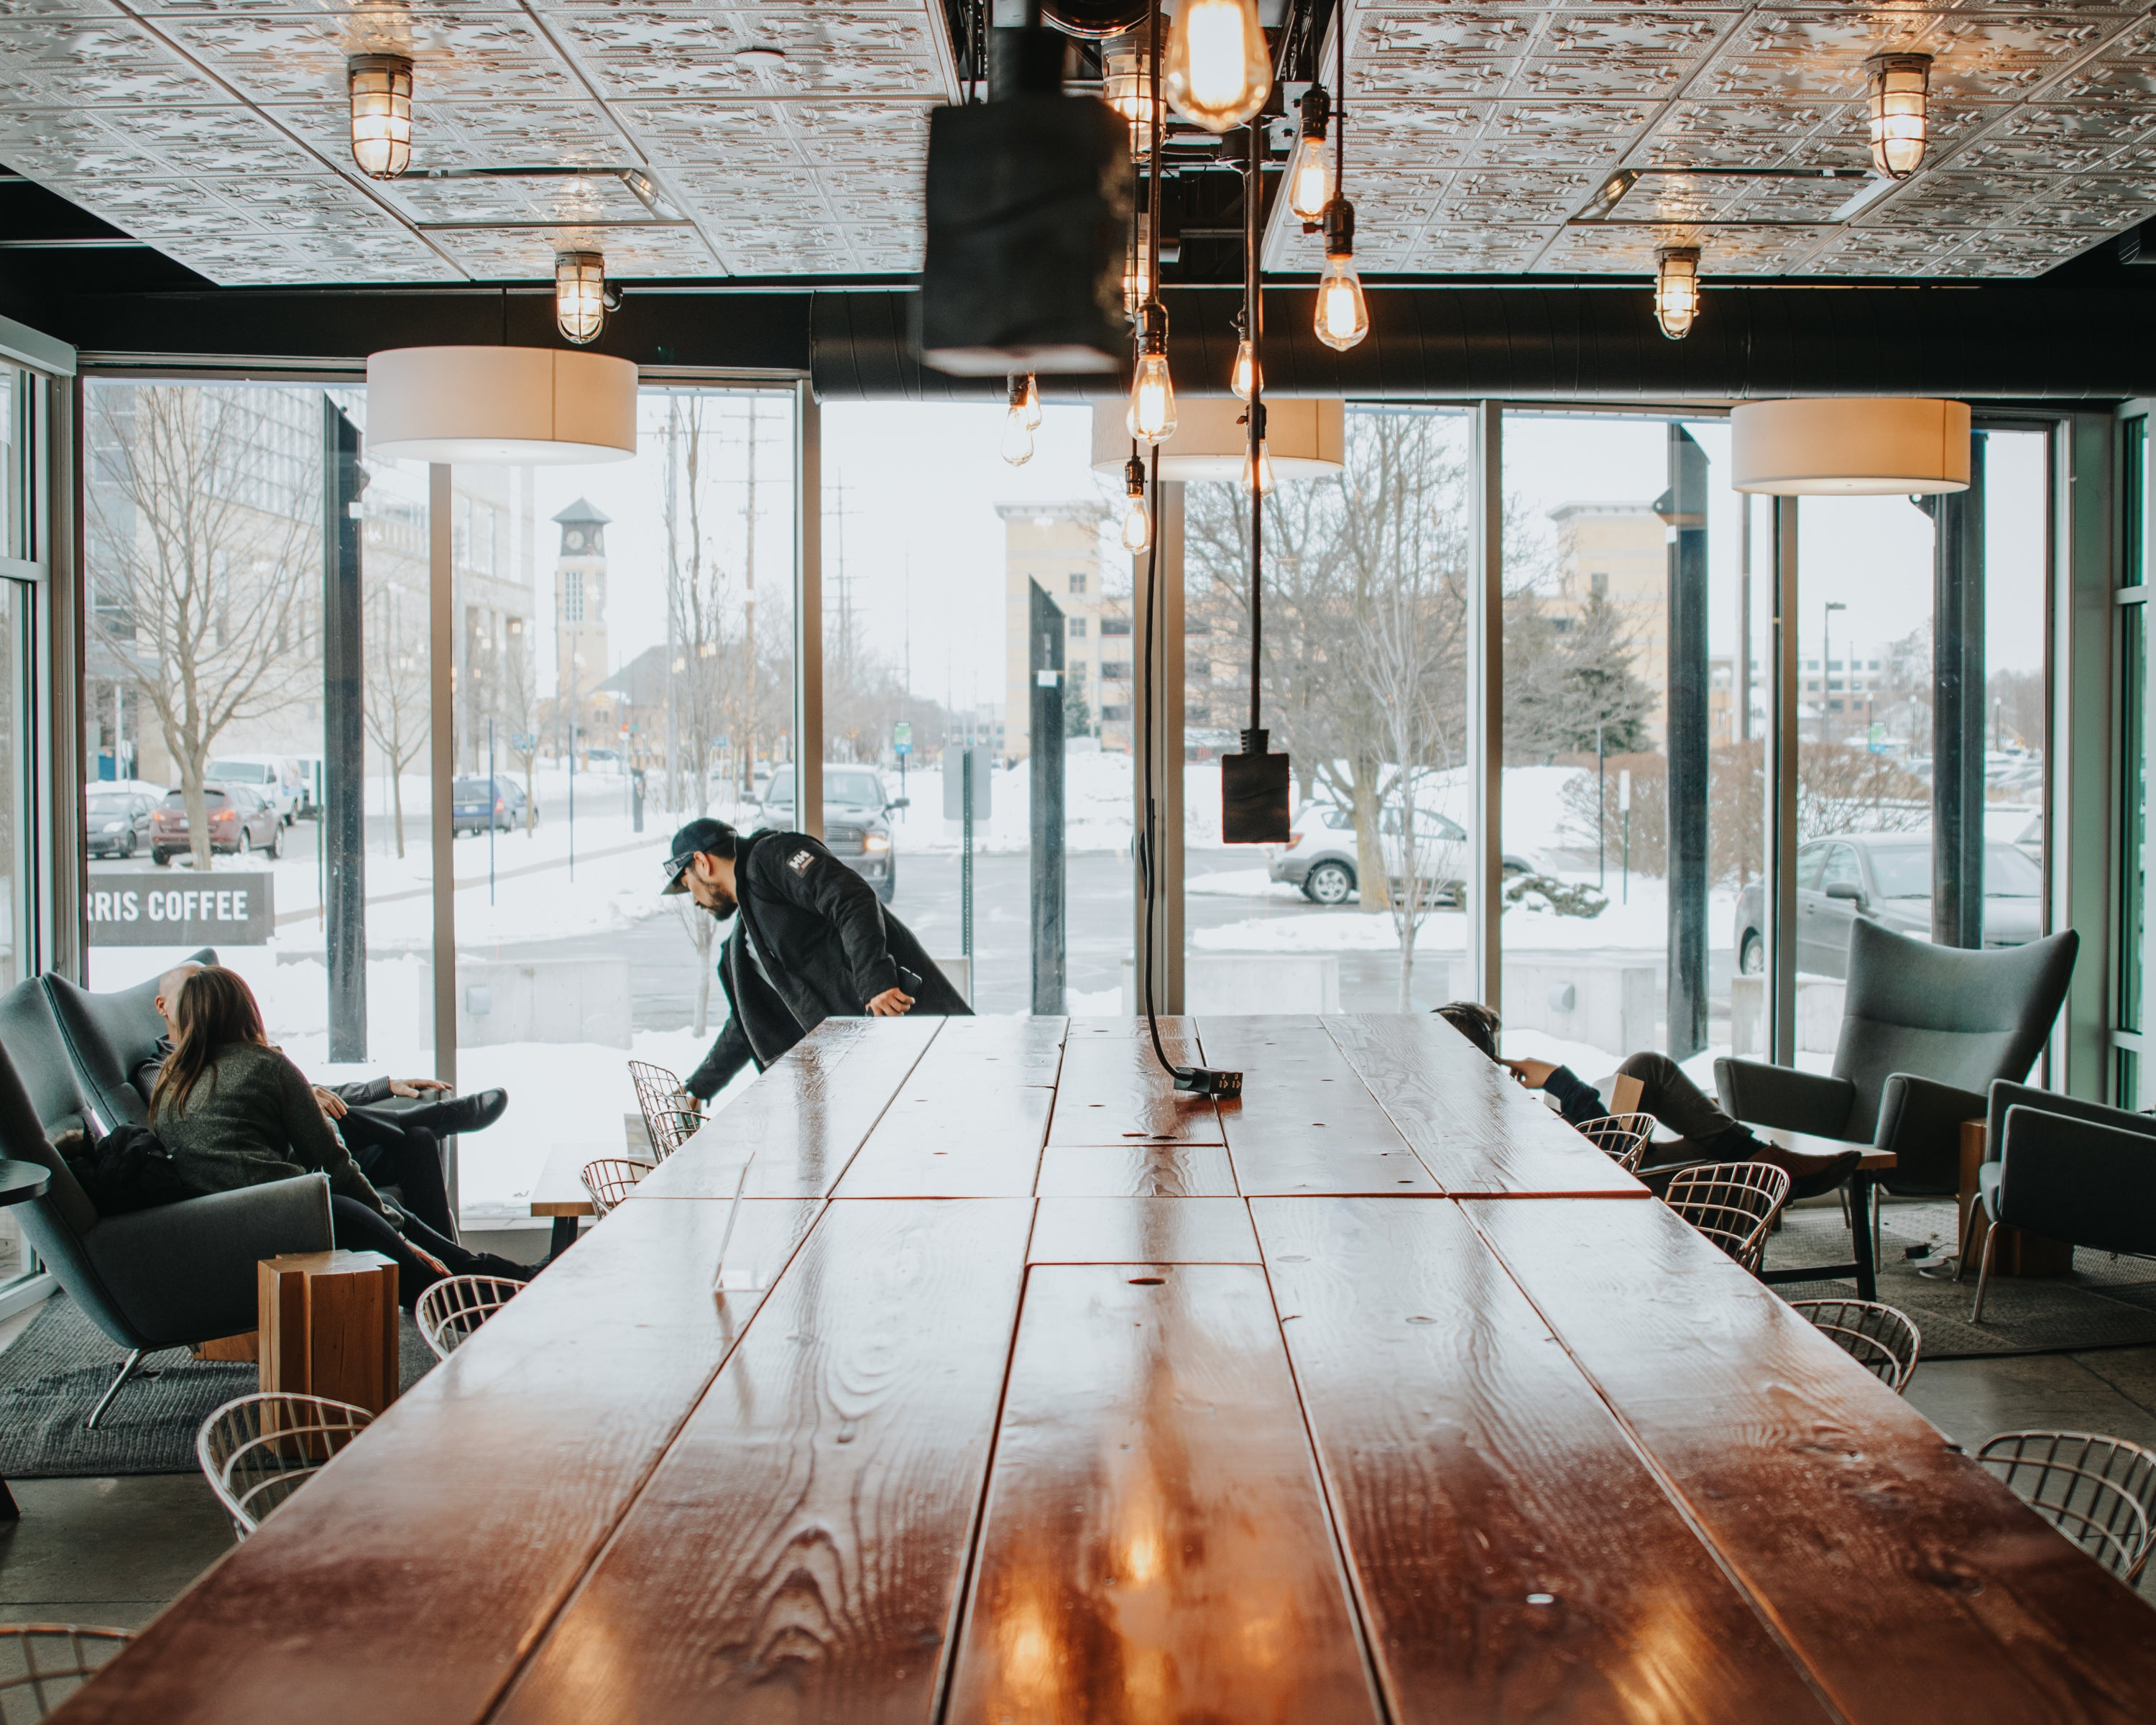 cafe setting with large wooden table